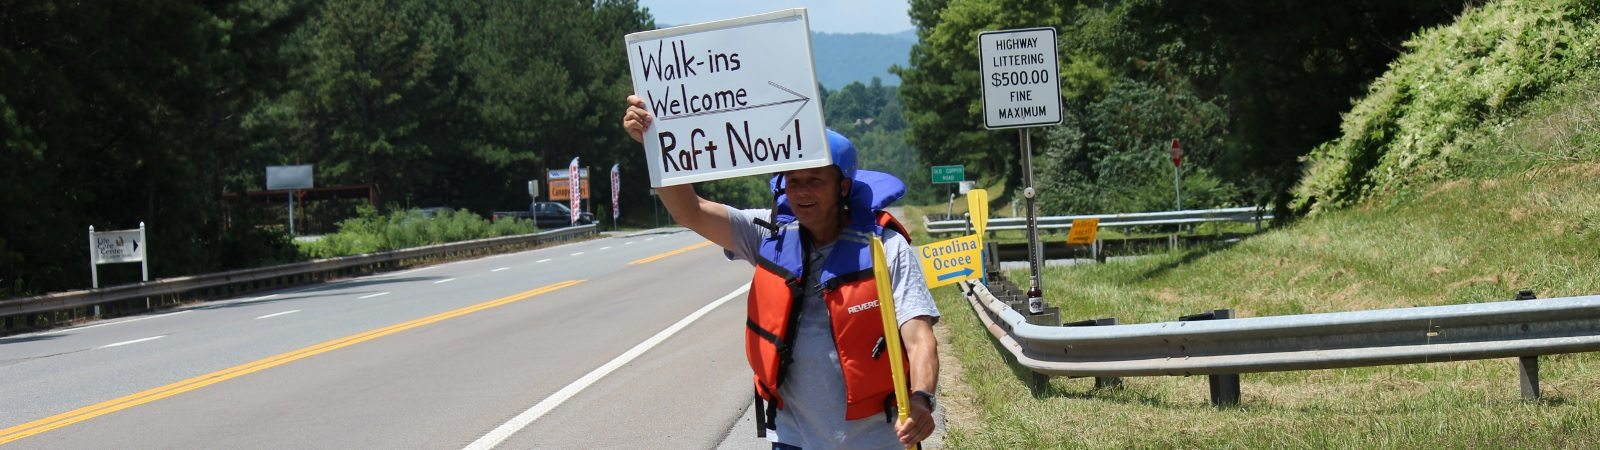 Ocoee rafting trip walk-ins welcome